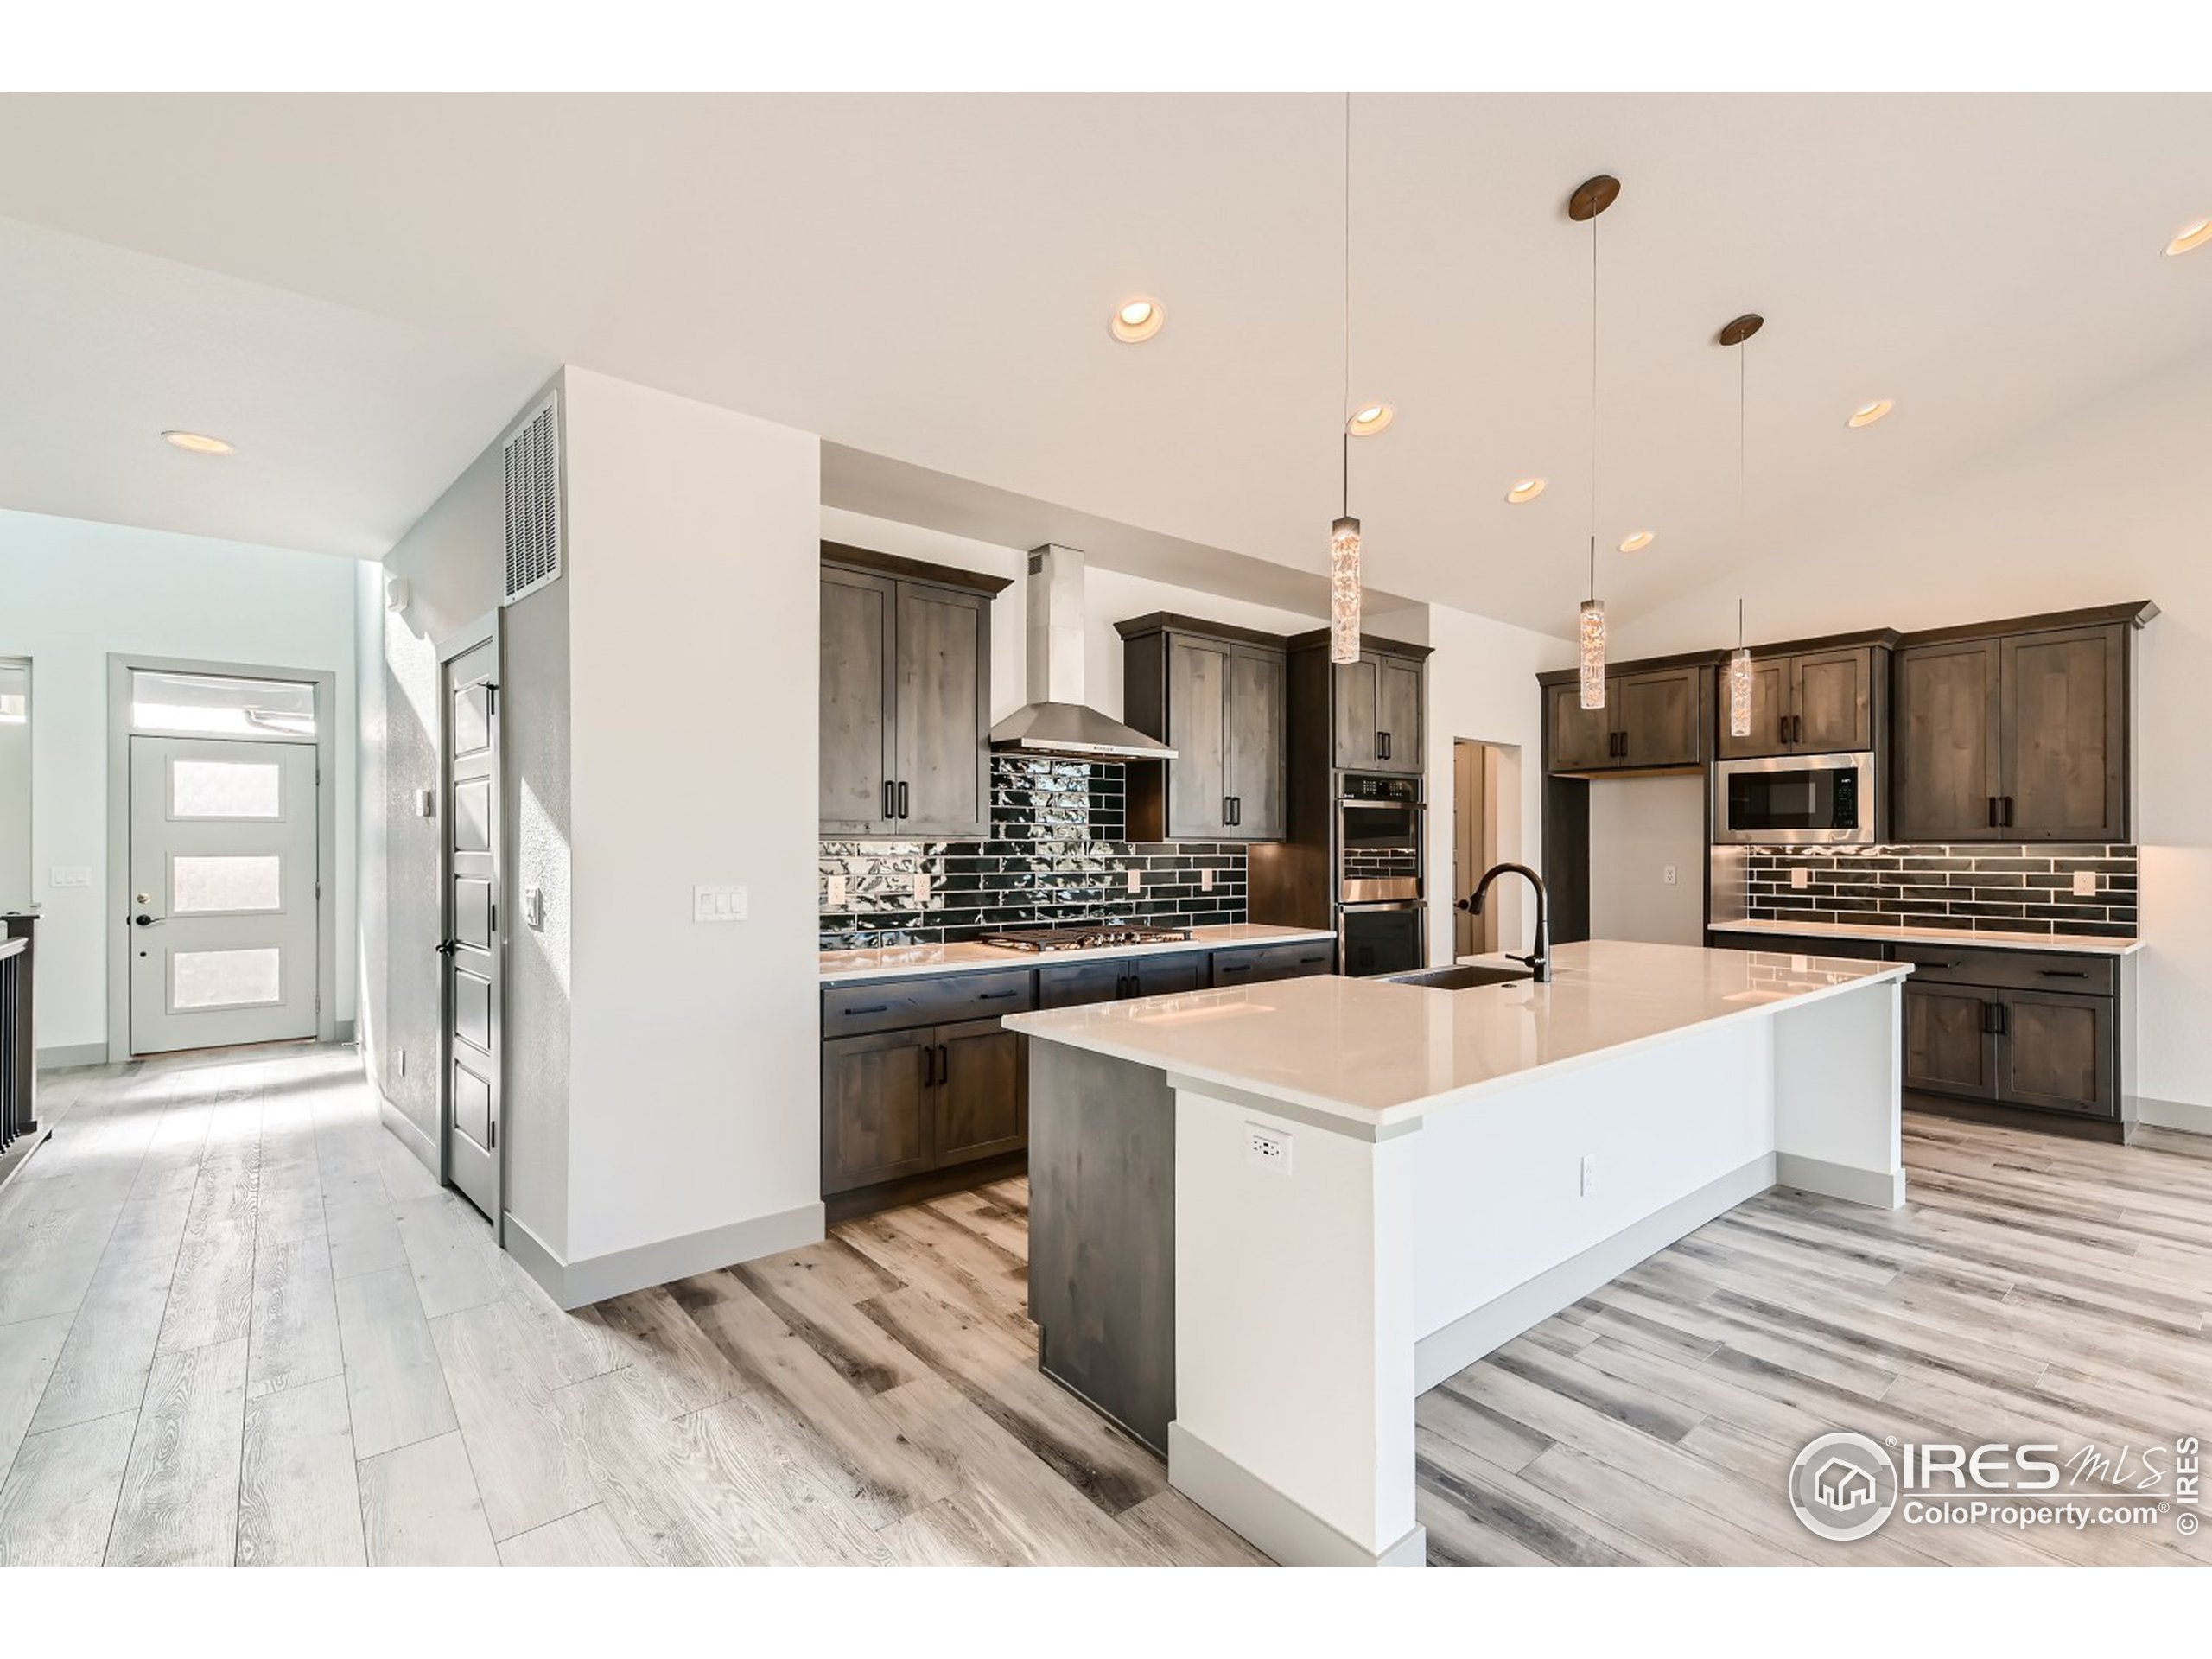 Foyer - All photos are of a previously built home.